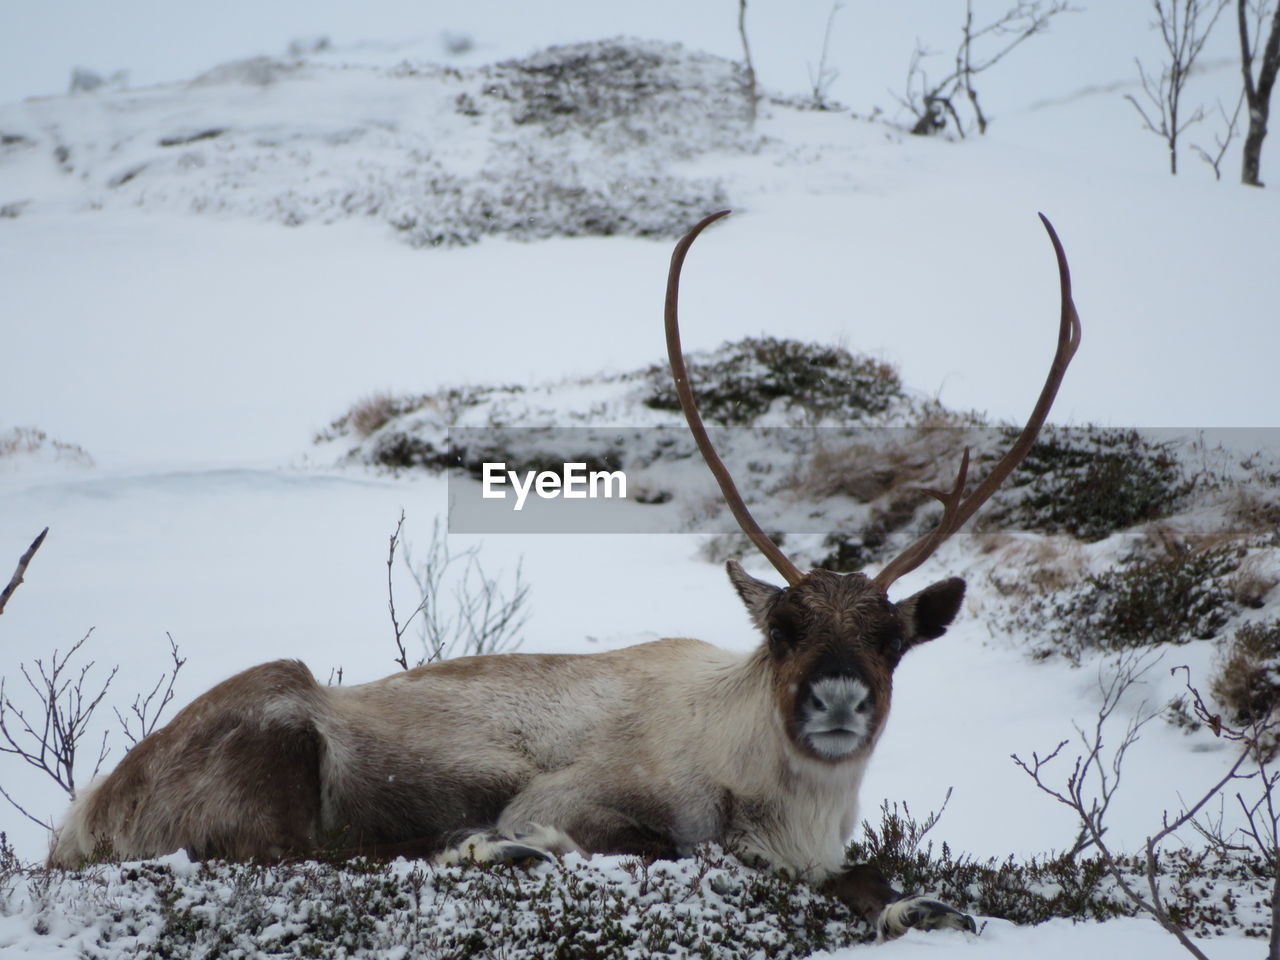 cold temperature, snow, winter, mammal, animal themes, animal, vertebrate, one animal, field, animal wildlife, nature, no people, deer, animals in the wild, day, domestic animals, land, focus on foreground, covering, herbivorous, snowcapped mountain